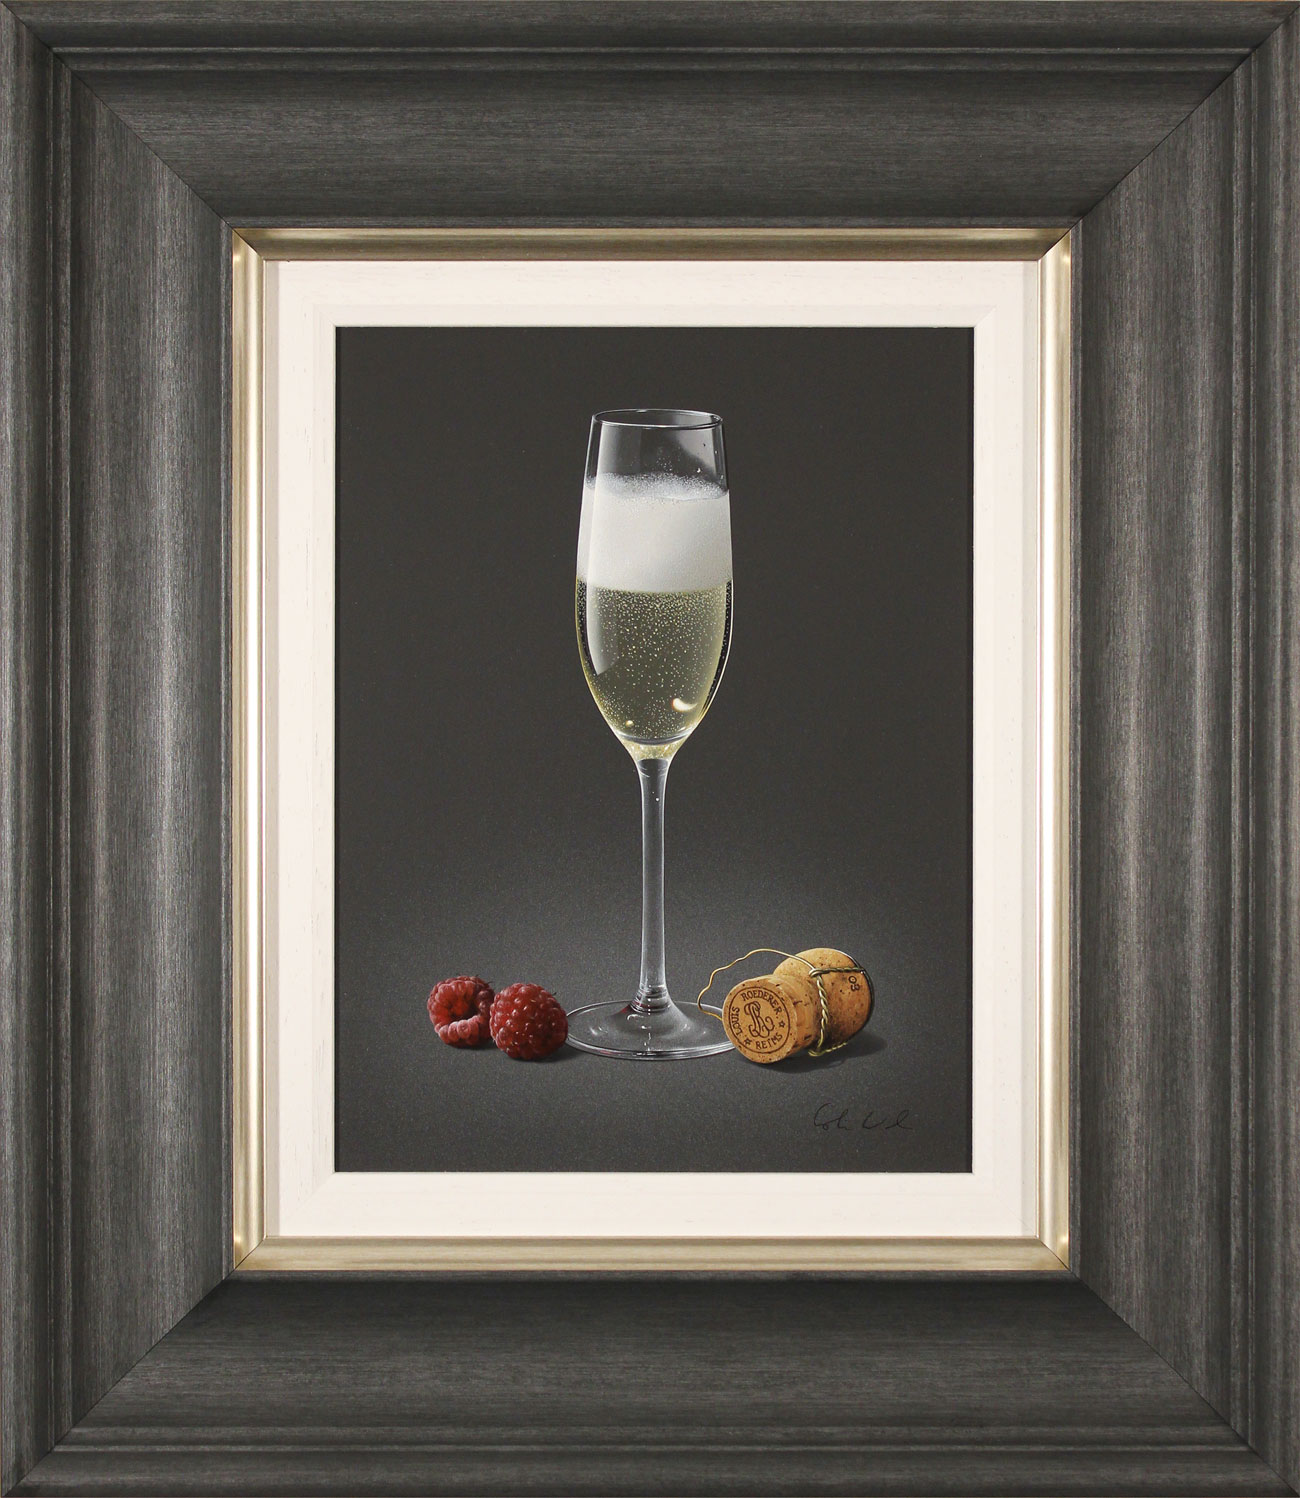 Colin Wilson, Original acrylic painting on board, Champagne and Raspberries Click to enlarge